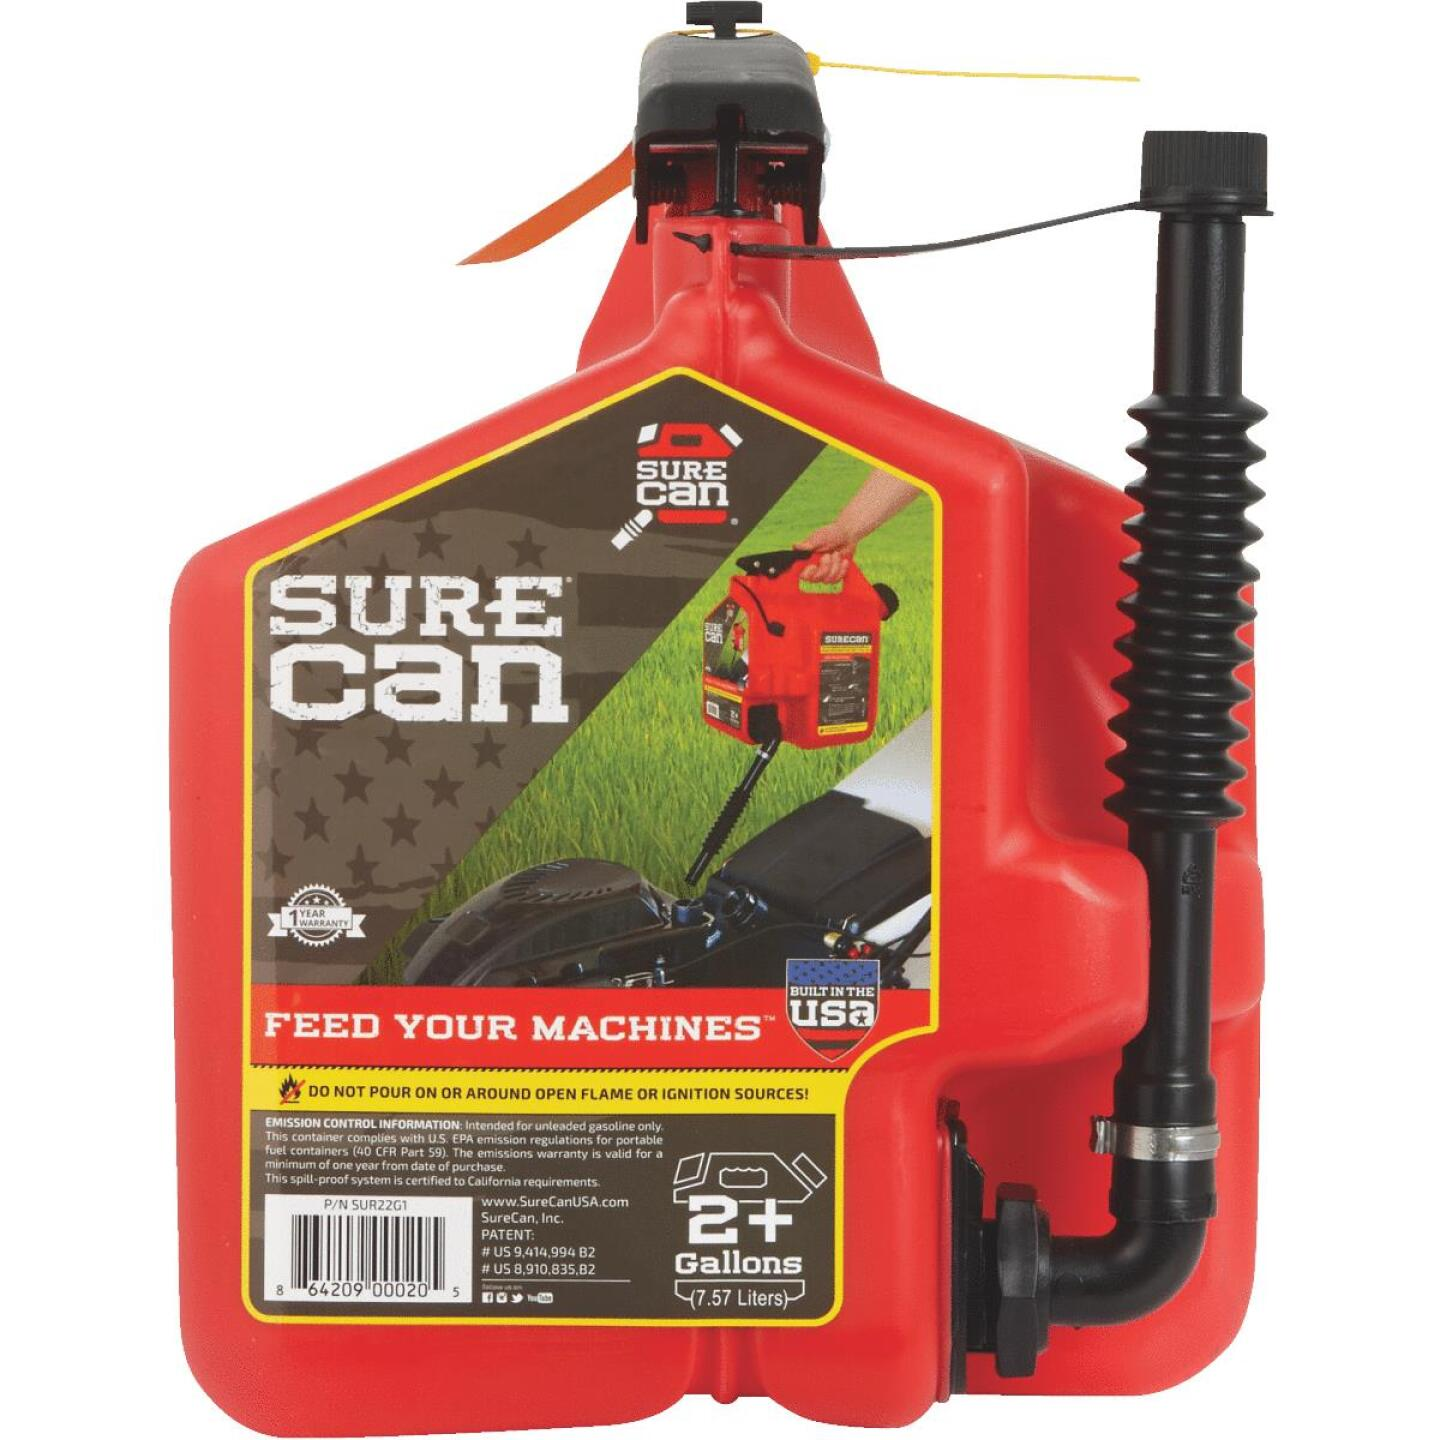 SureCan 2.2 Gal. Plastic Gasoline Fuel Can, Red Image 2